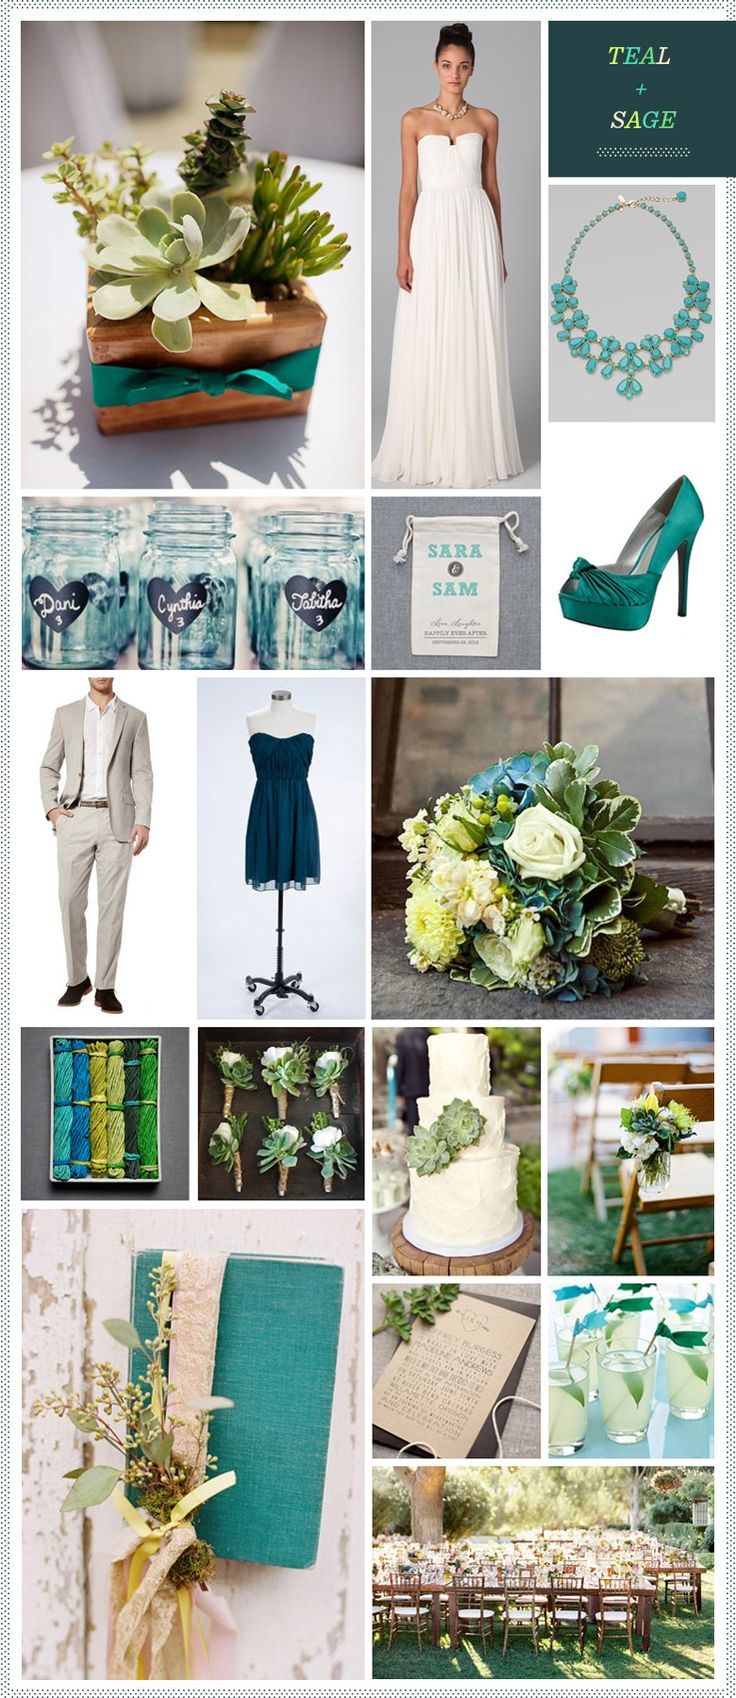 1000 images about red and teal wedding ideas on pinterest. Black Bedroom Furniture Sets. Home Design Ideas